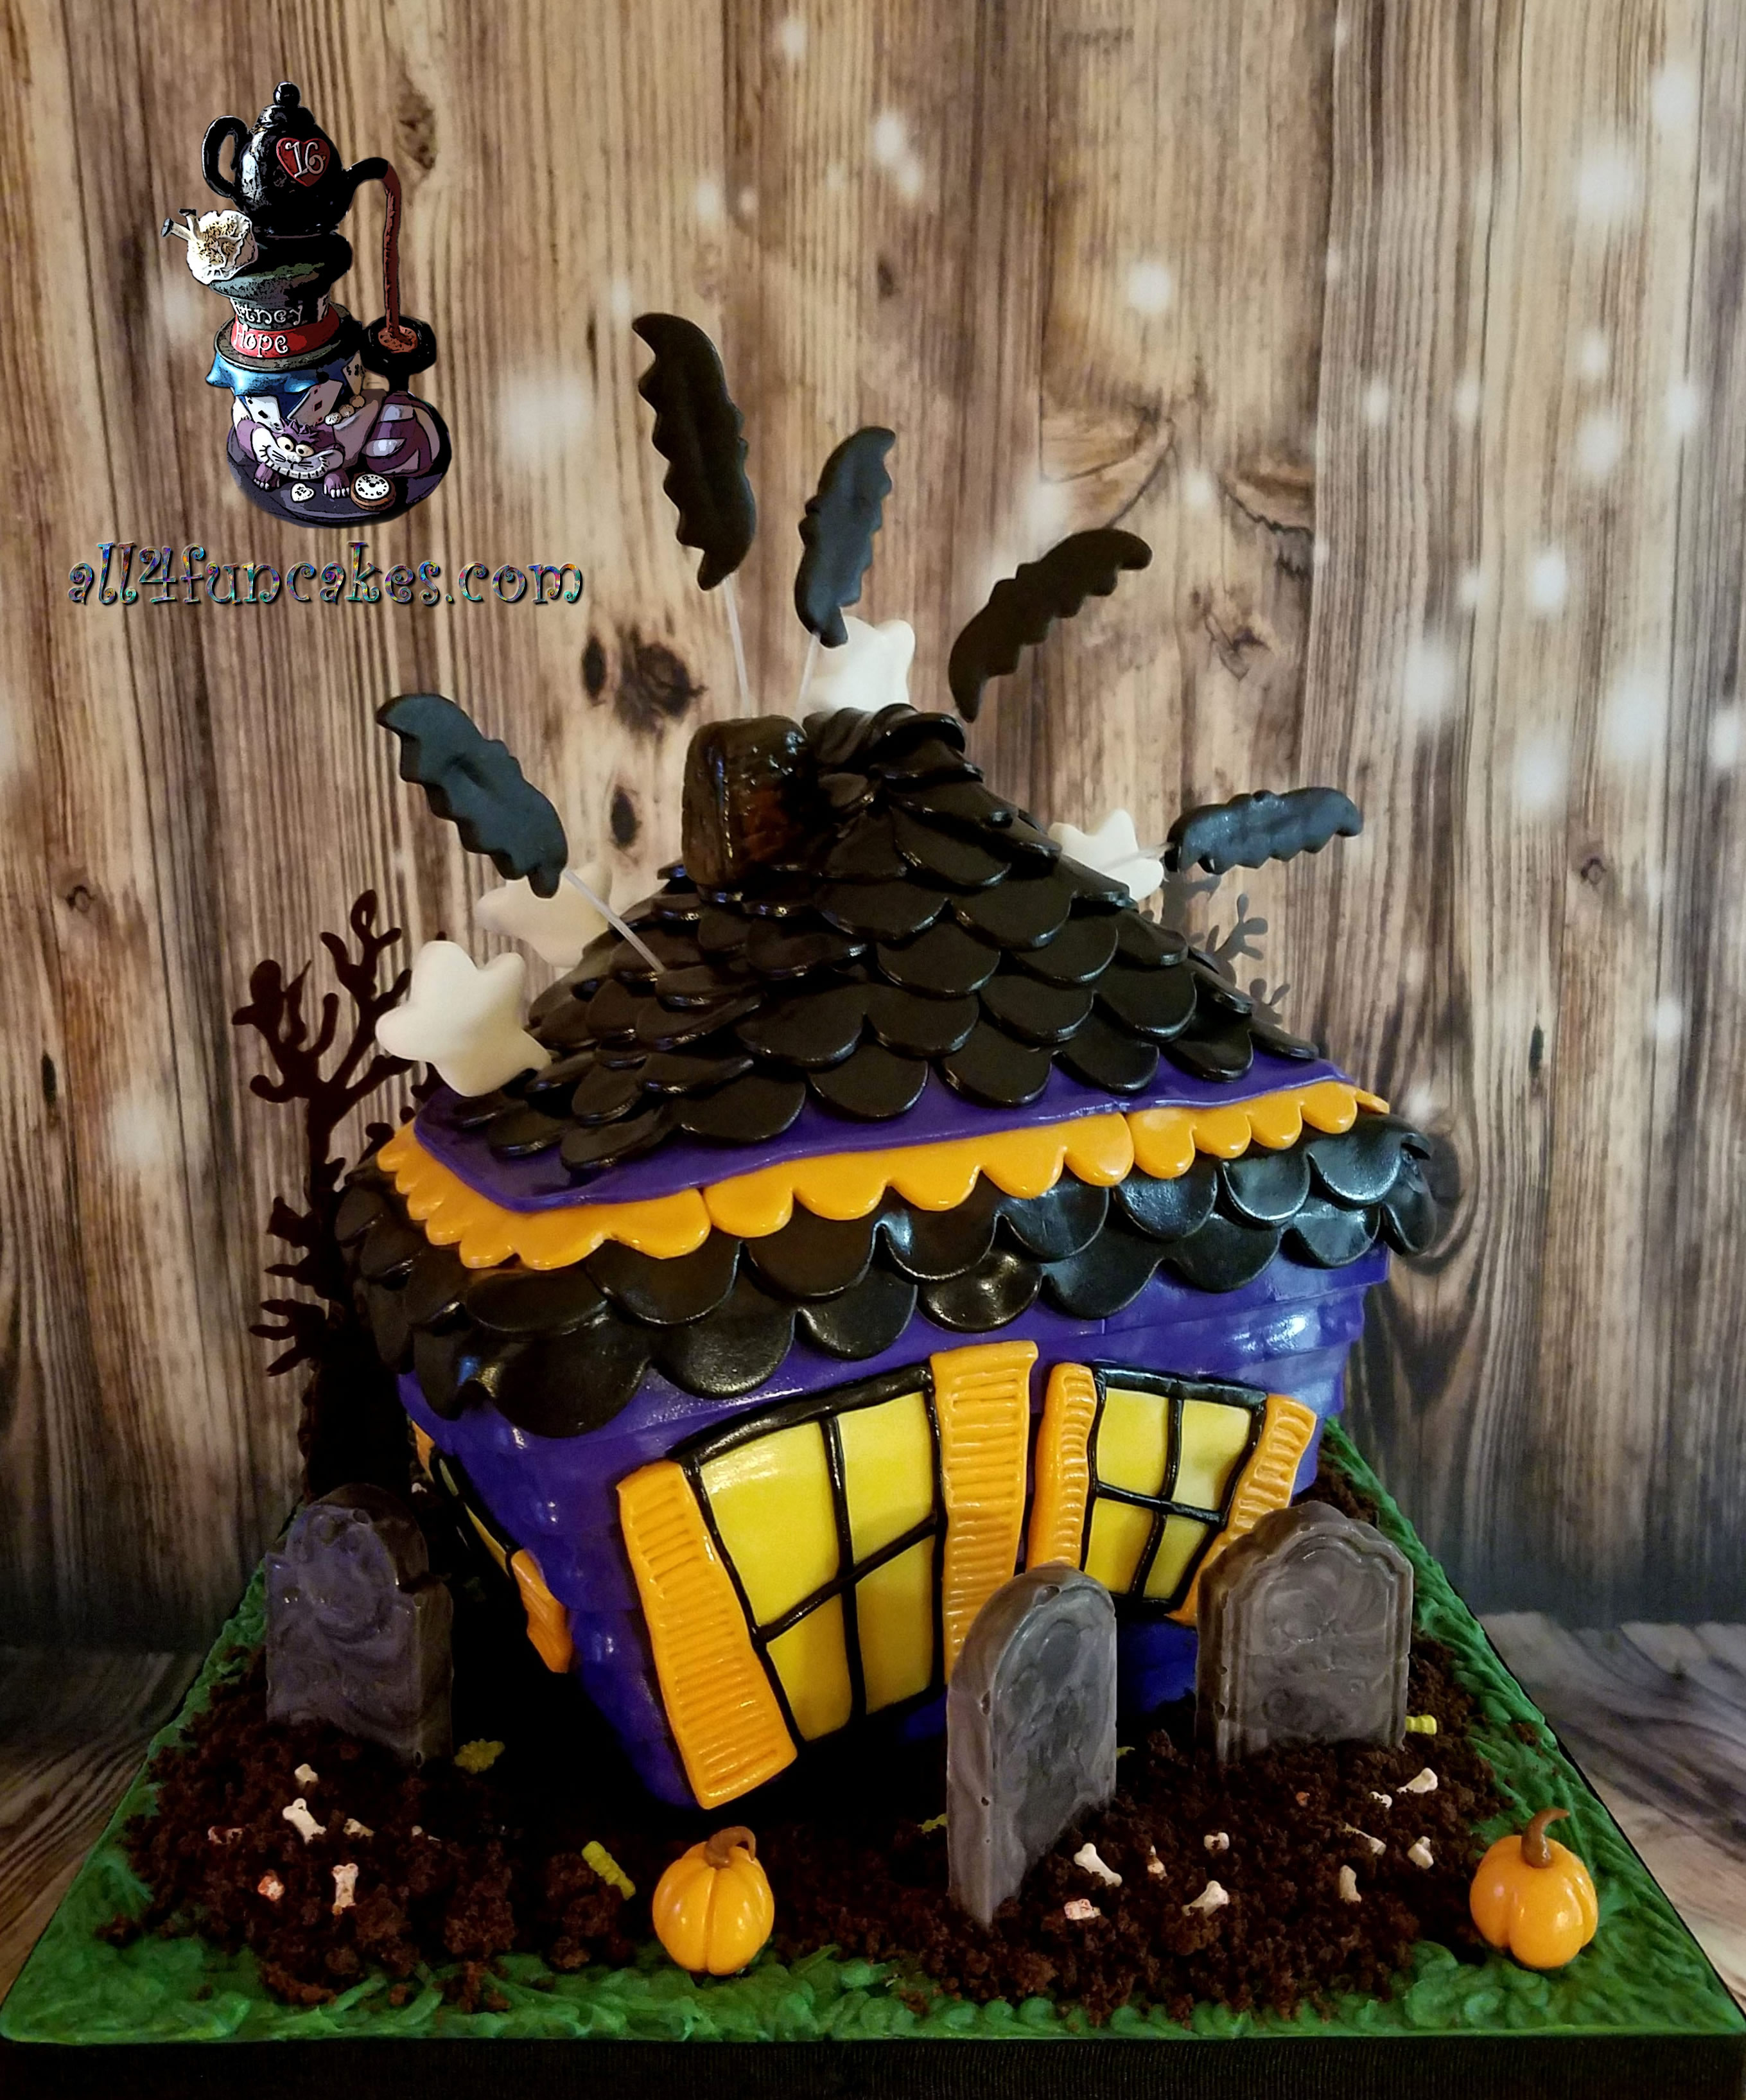 Haunted House Sculpted Birthday Cake by All4Fun Cakes LLC 2017